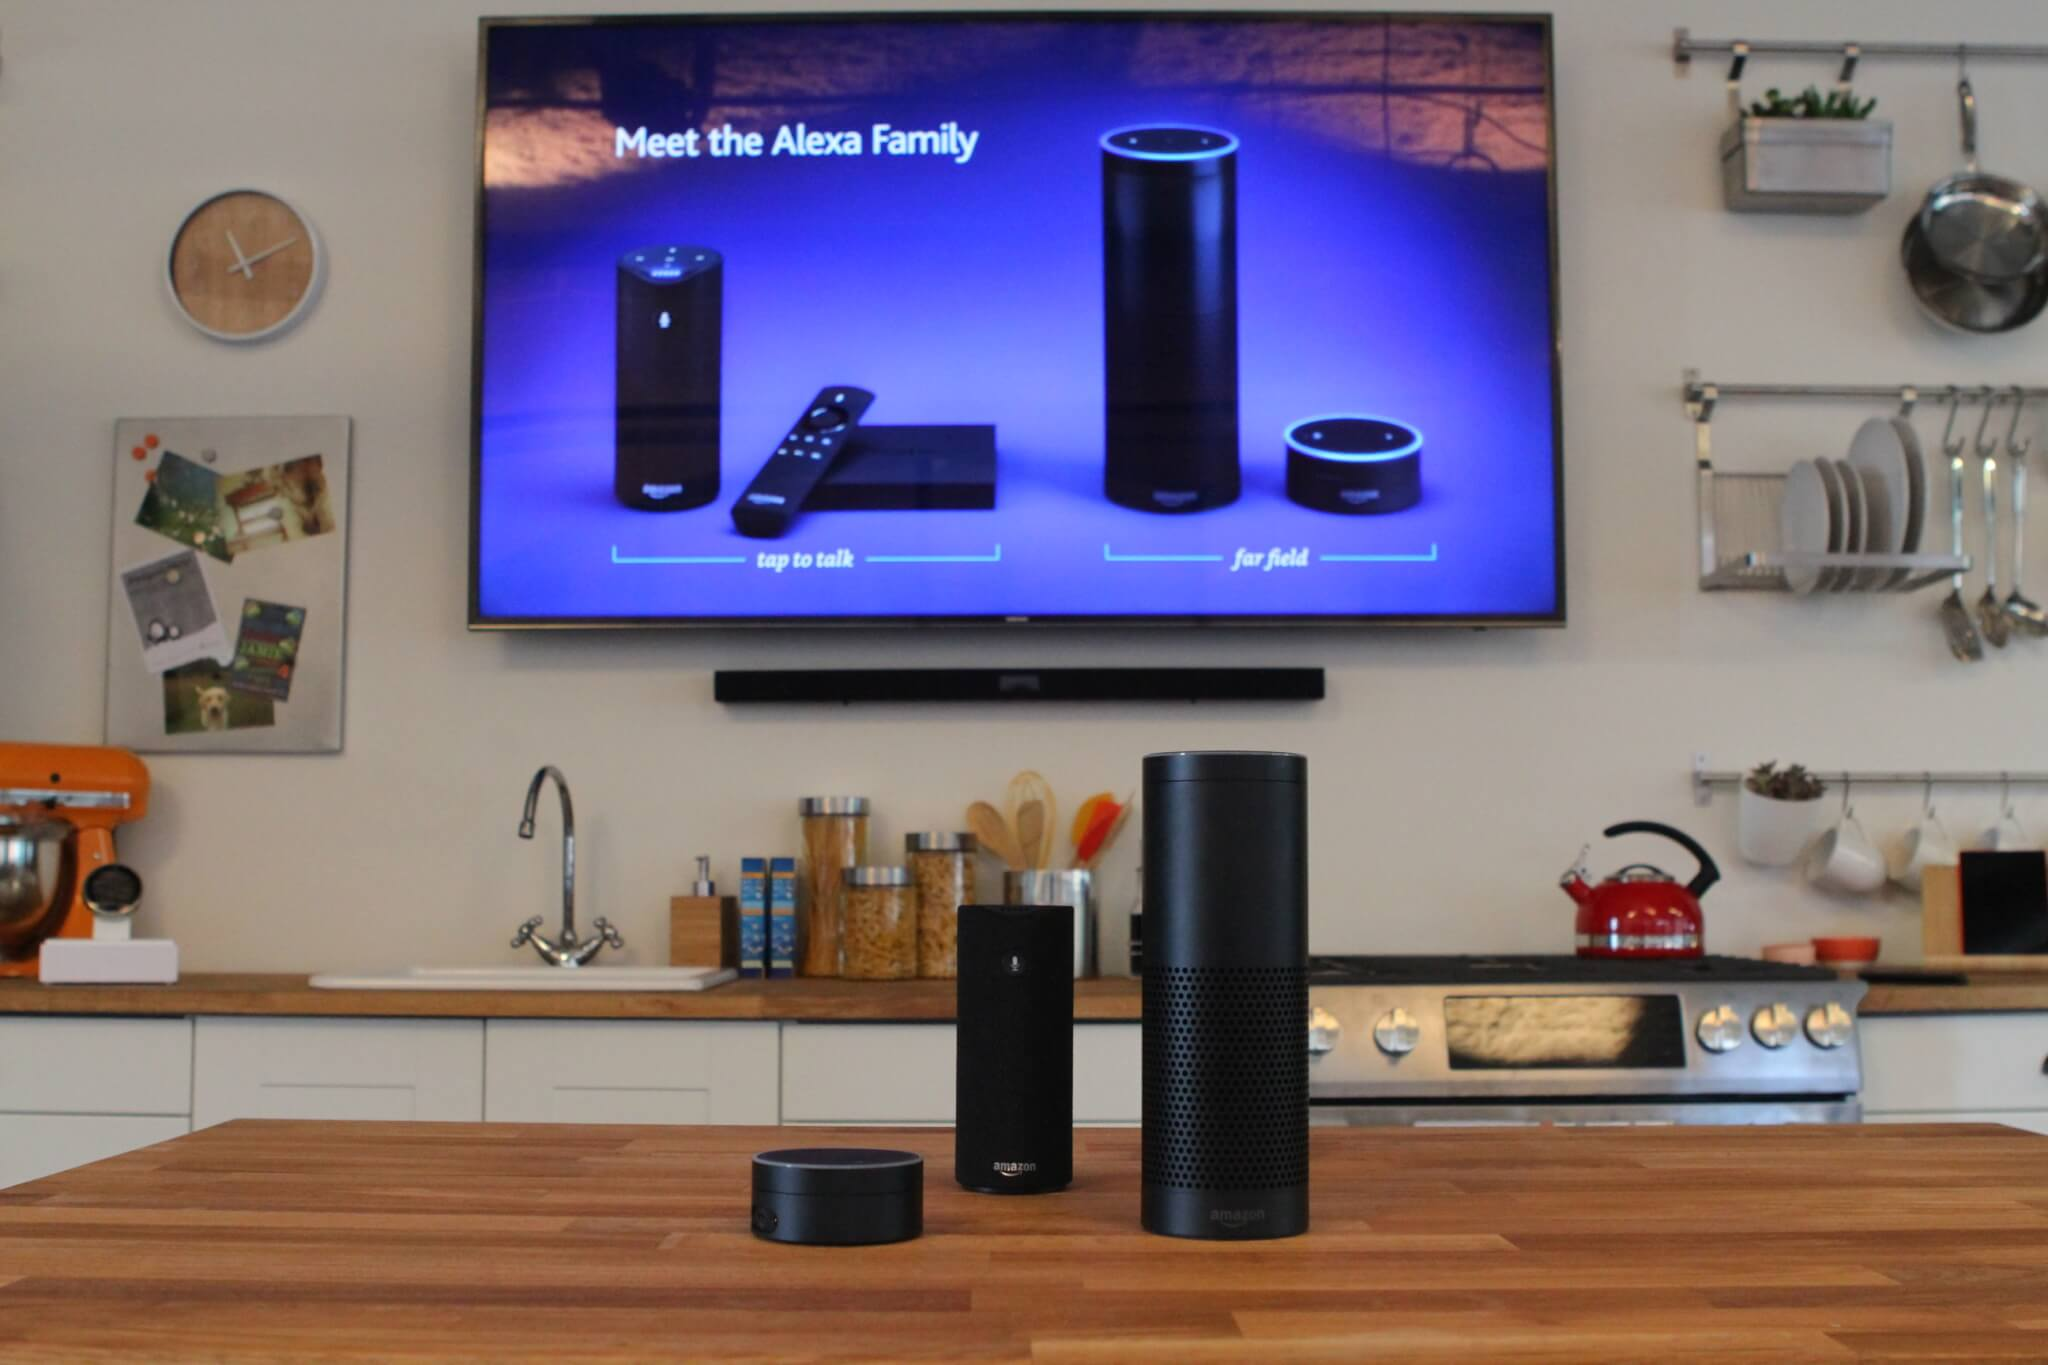 Amazon's family of Alexa-enabled devices